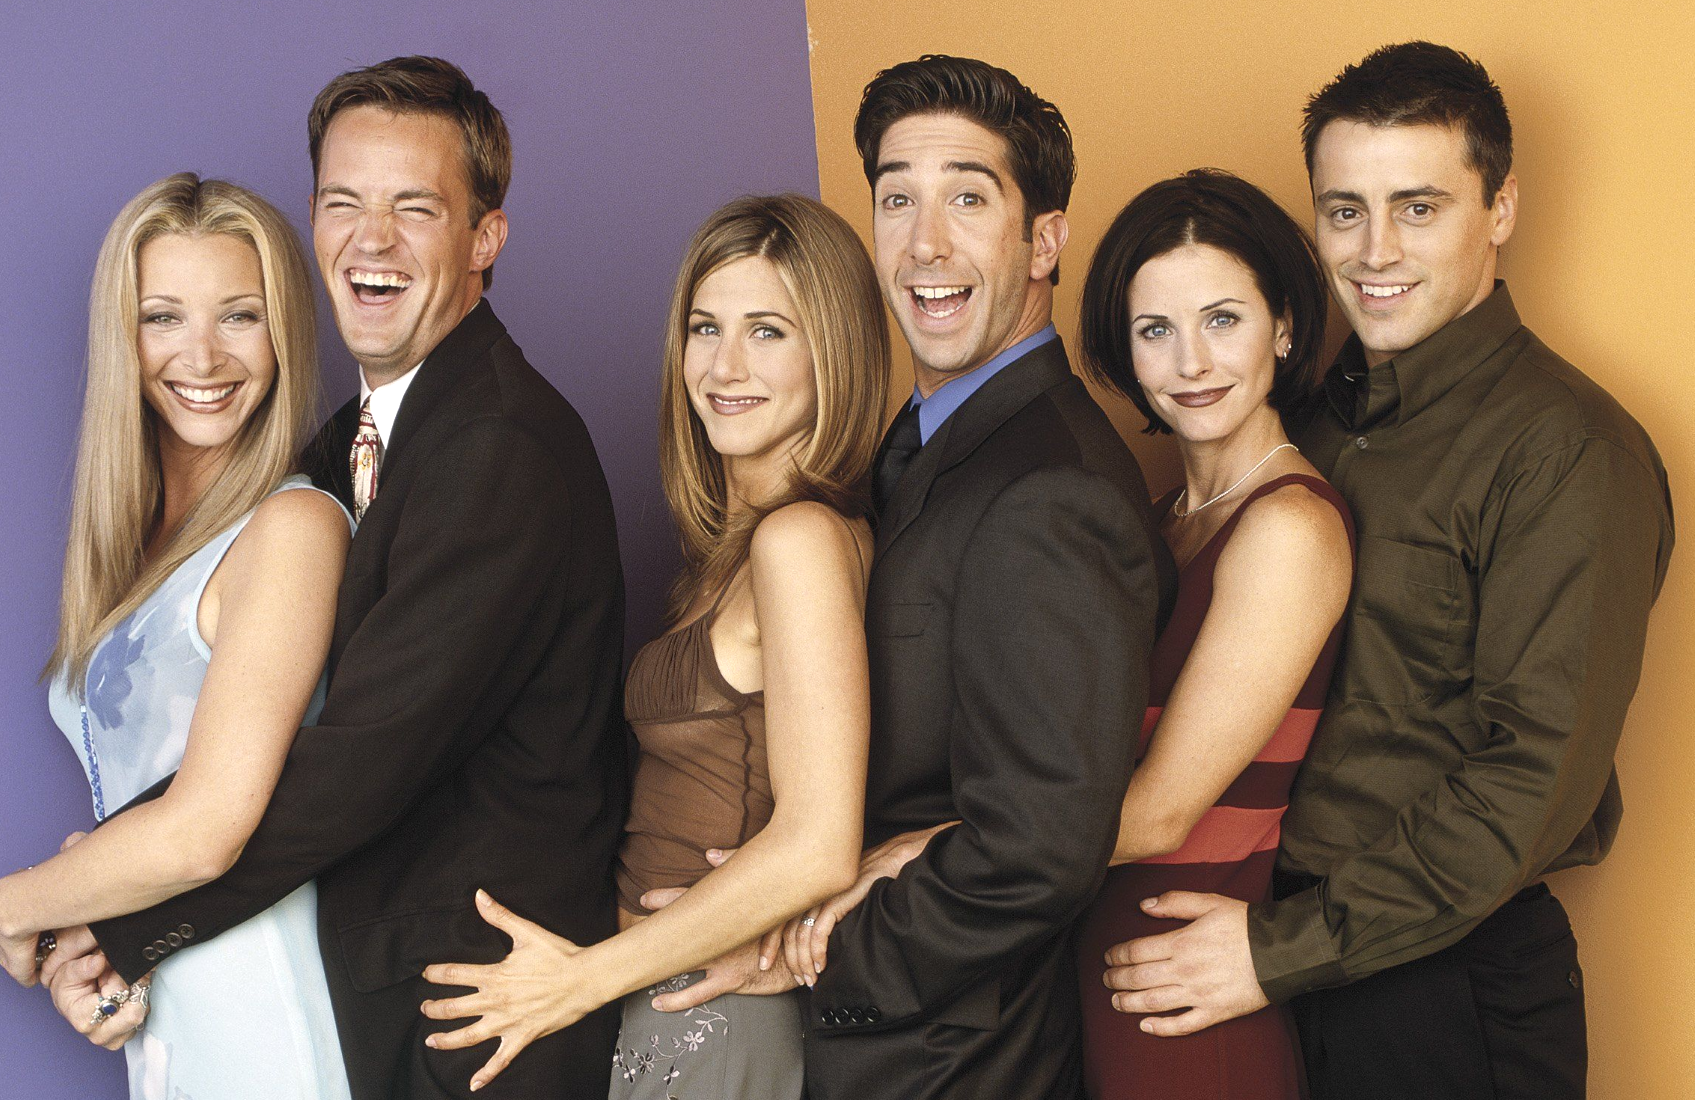 Lisa Kudrow, Matthew Perry, Jennifer Aniston, David Schwimmer, Courteney Cox and Matt LeBlanc in an early promotional photo for Friends. (NBC)